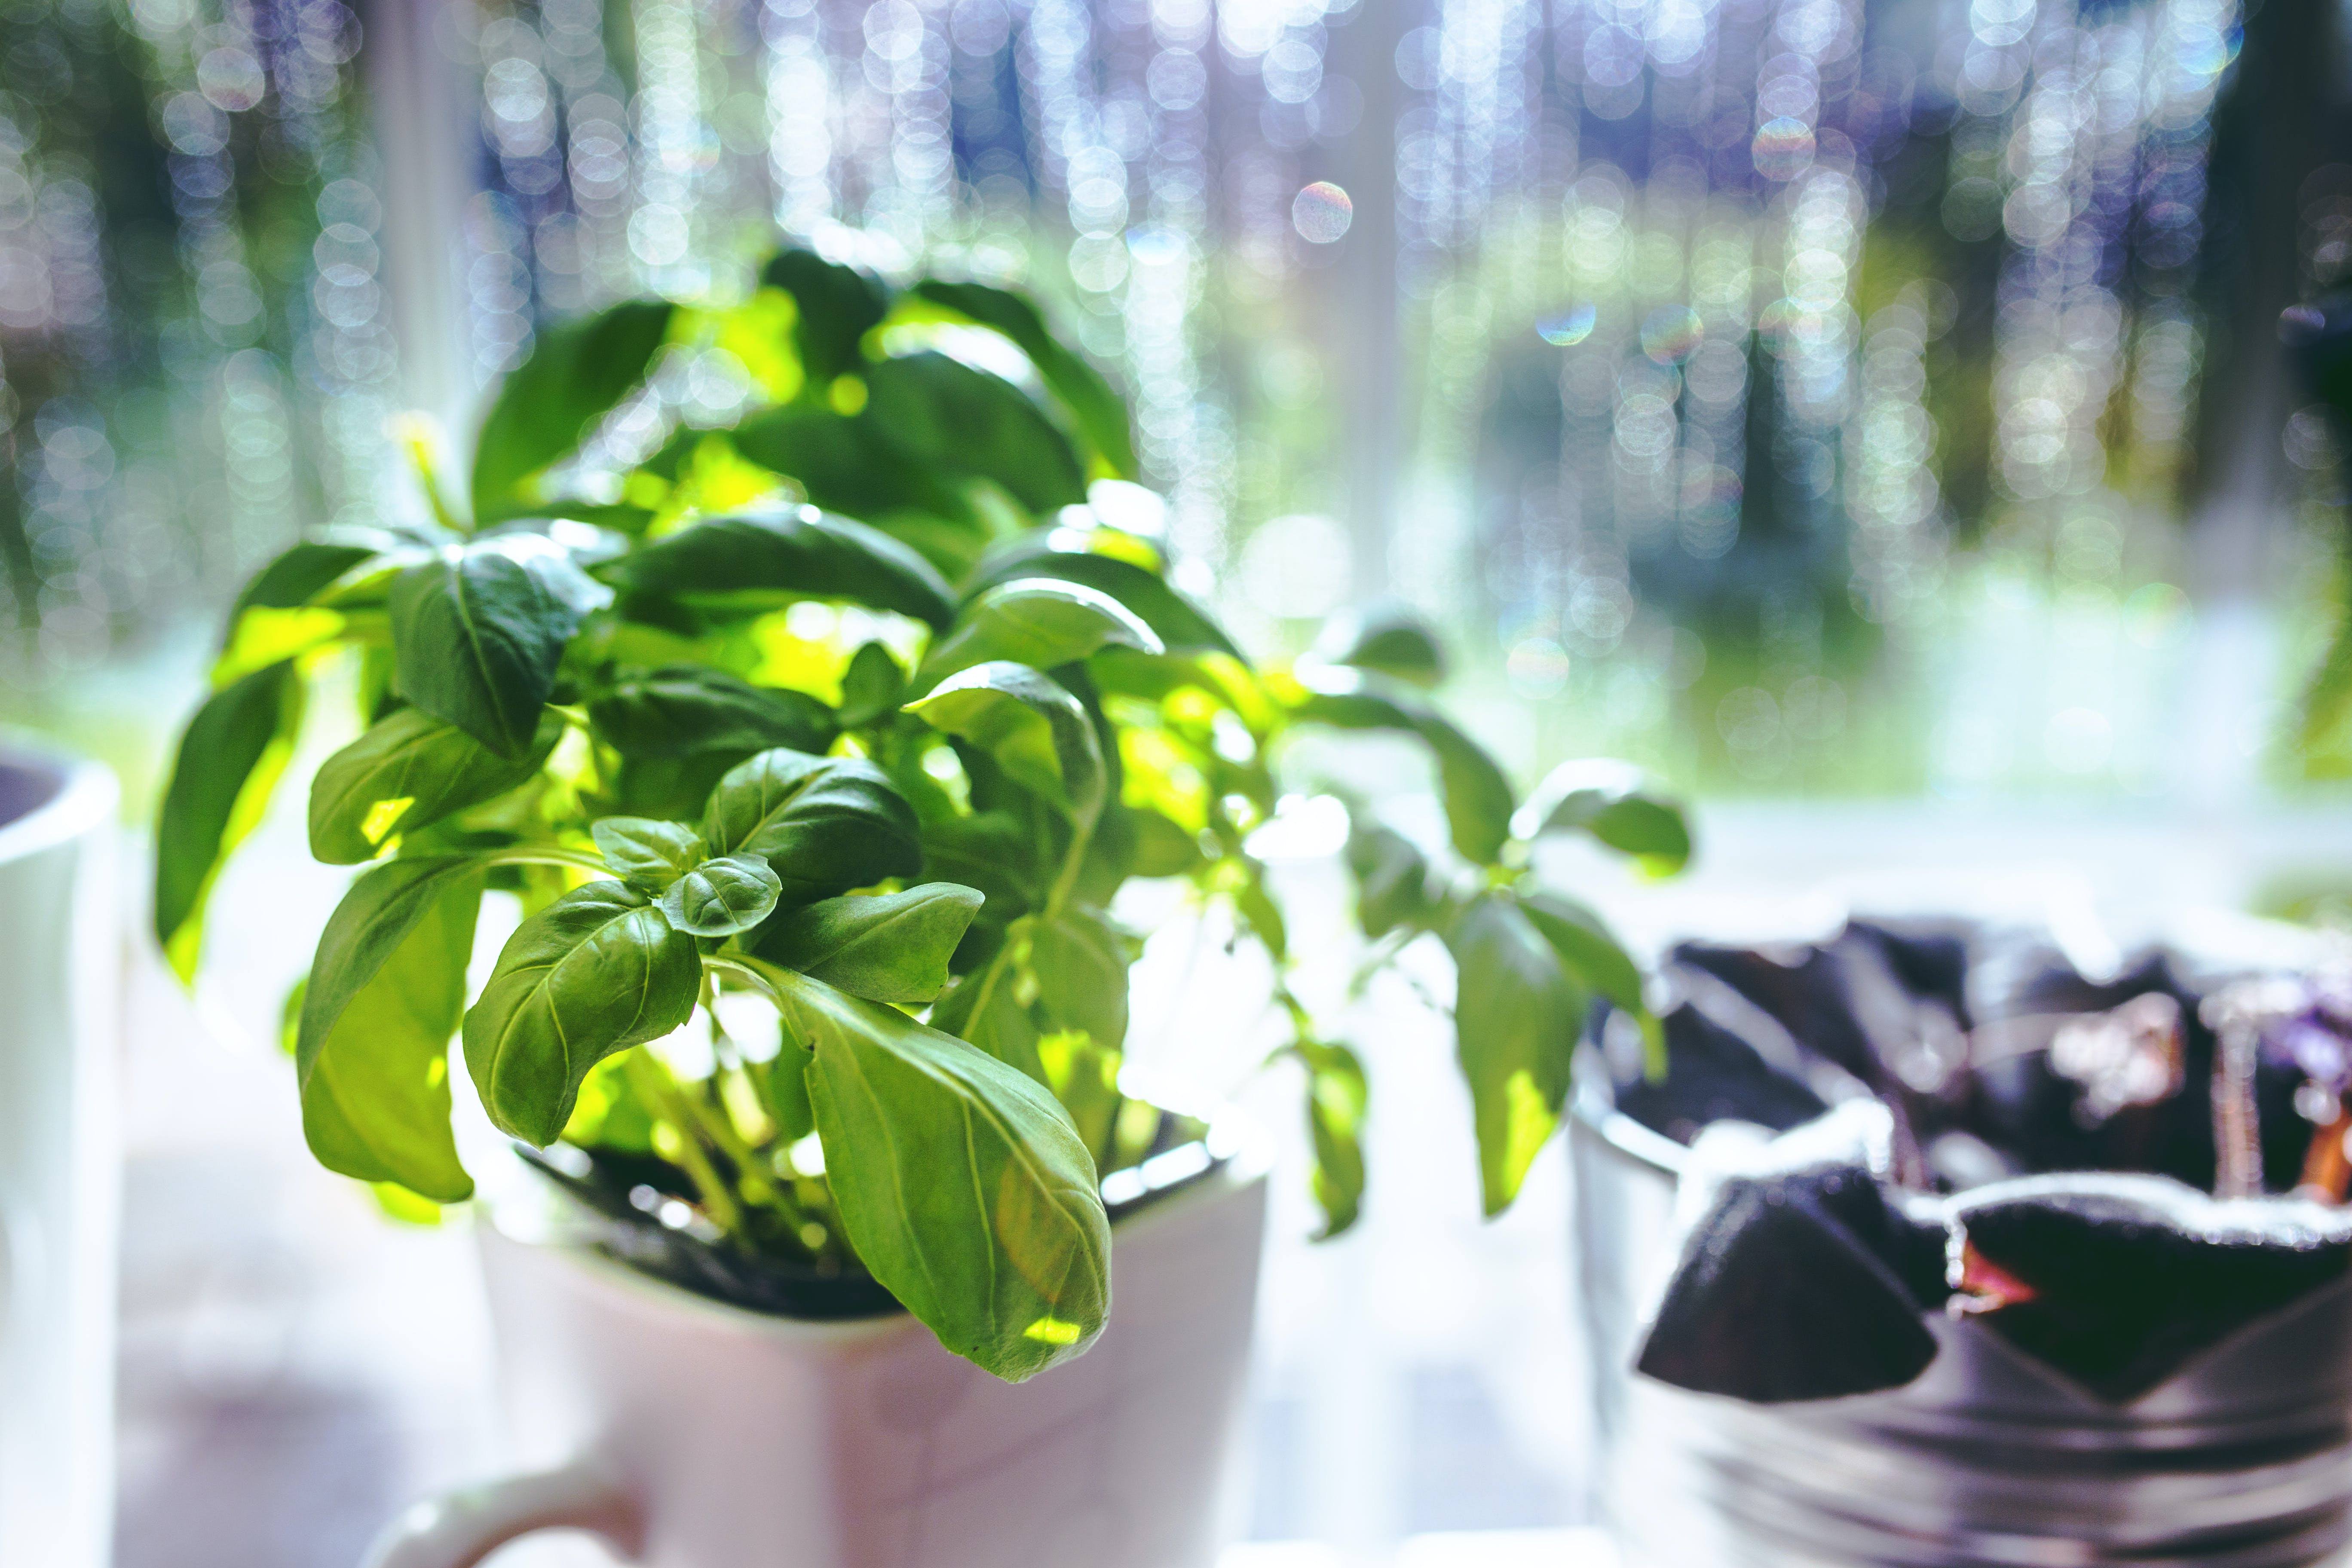 Basil in the cup